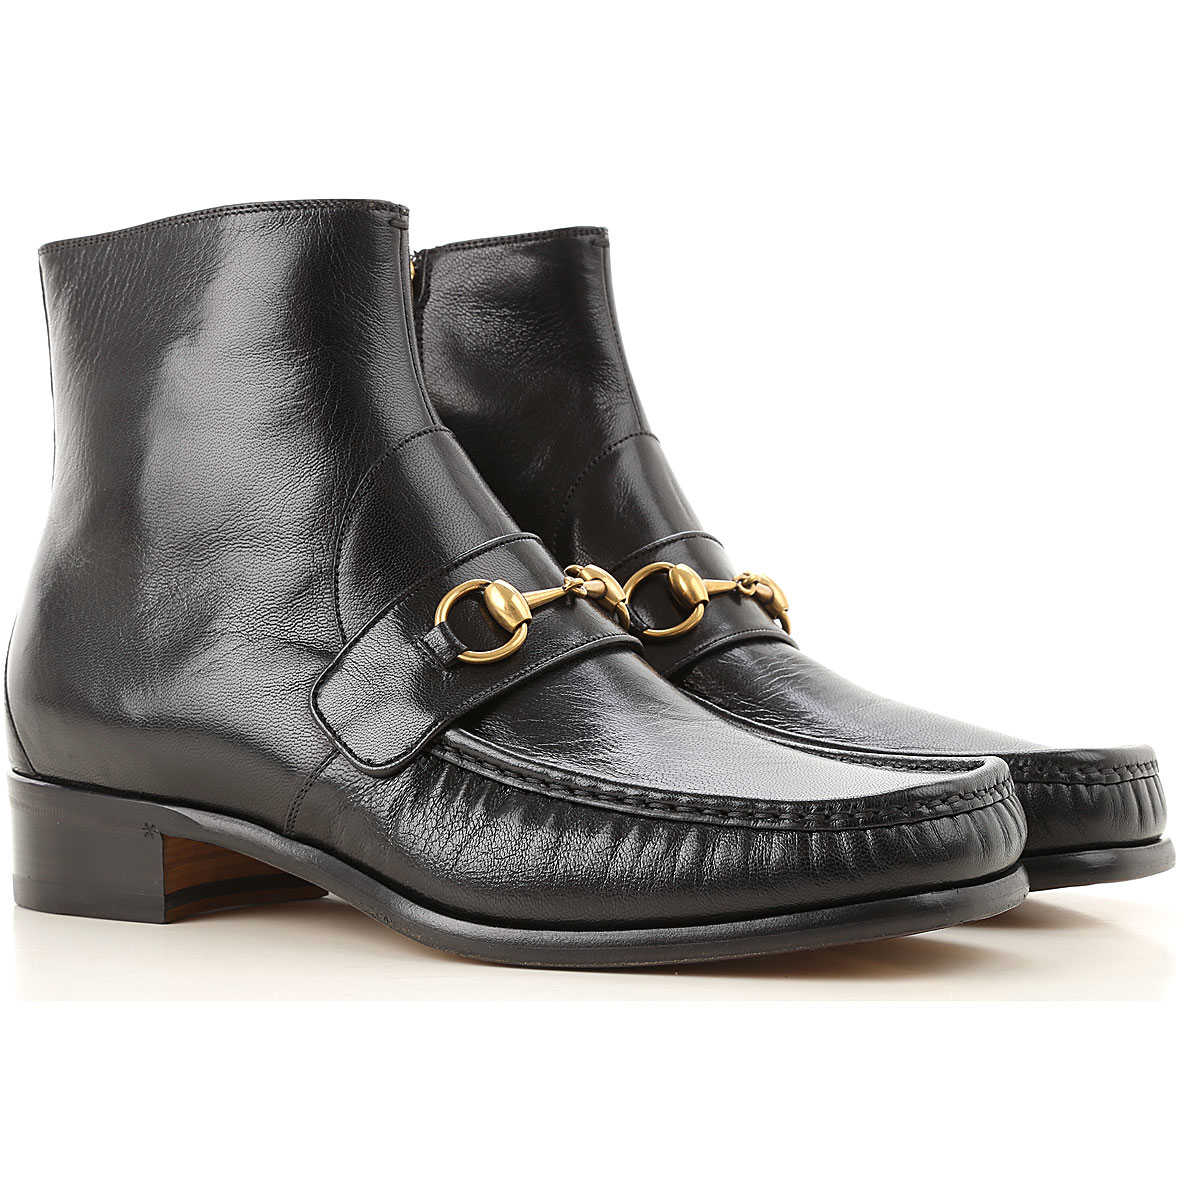 Gucci Boots for Men Booties On Sale USA - GOOFASH